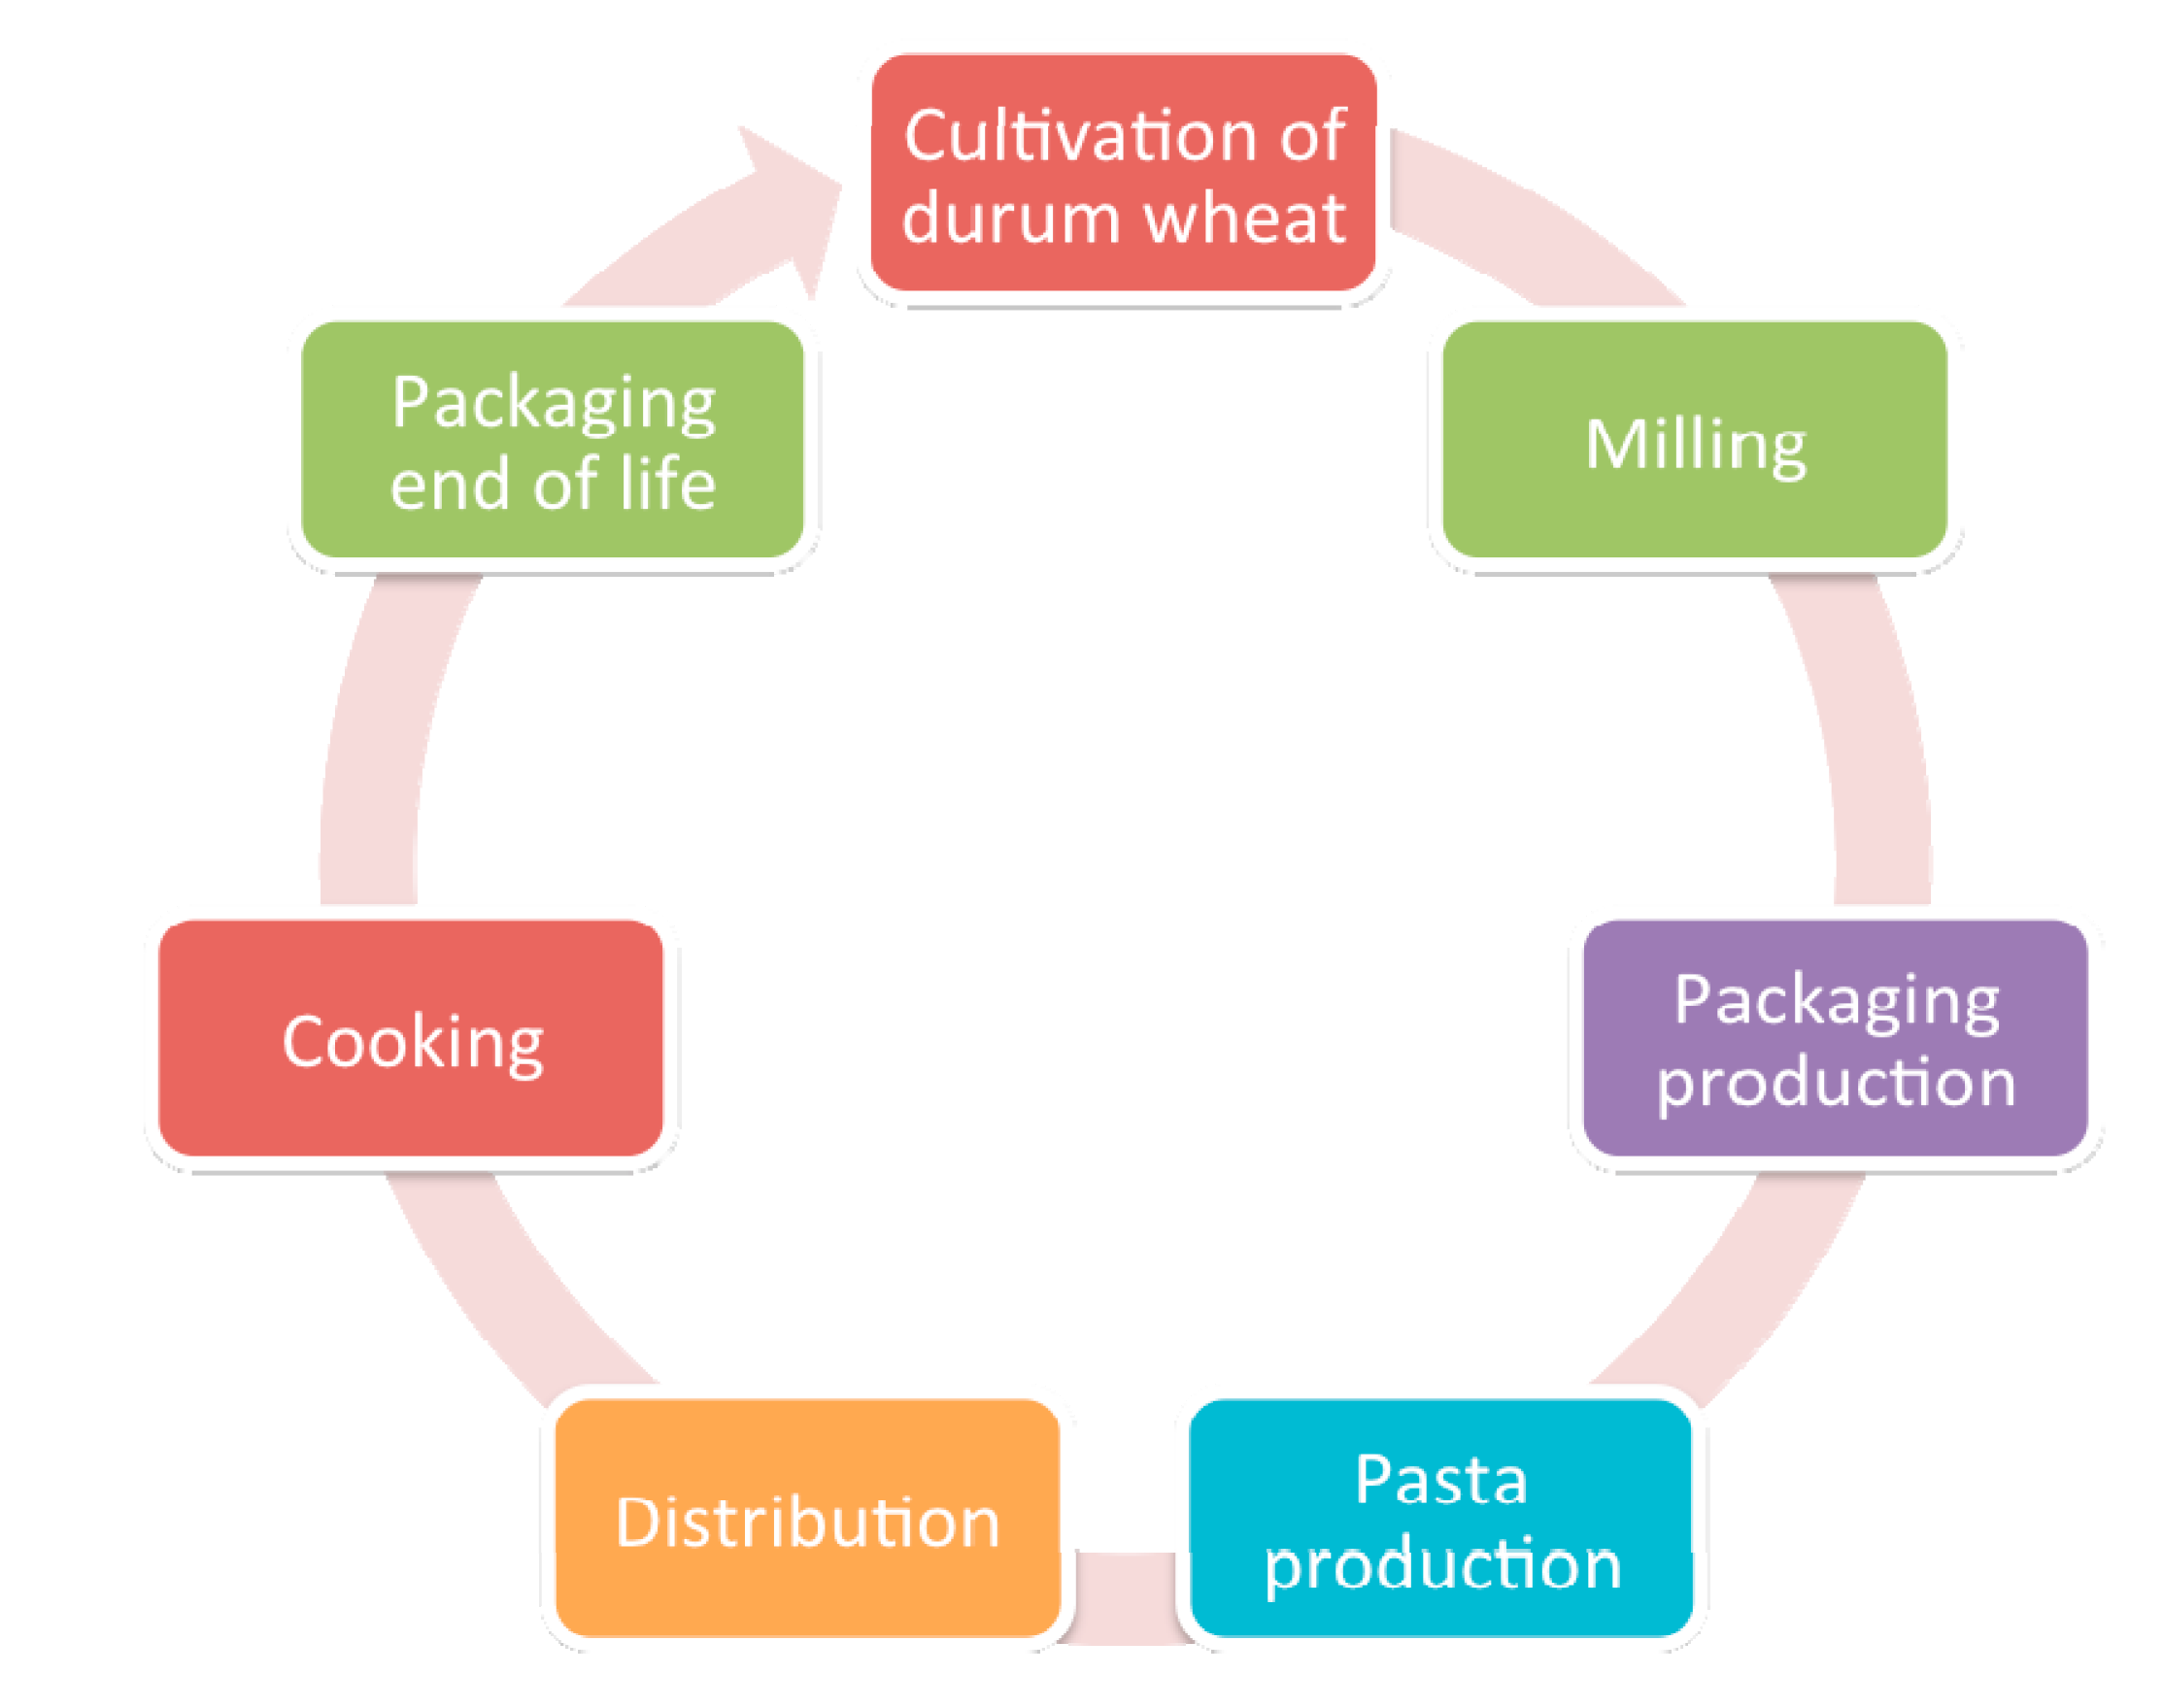 value chain wheat industry image